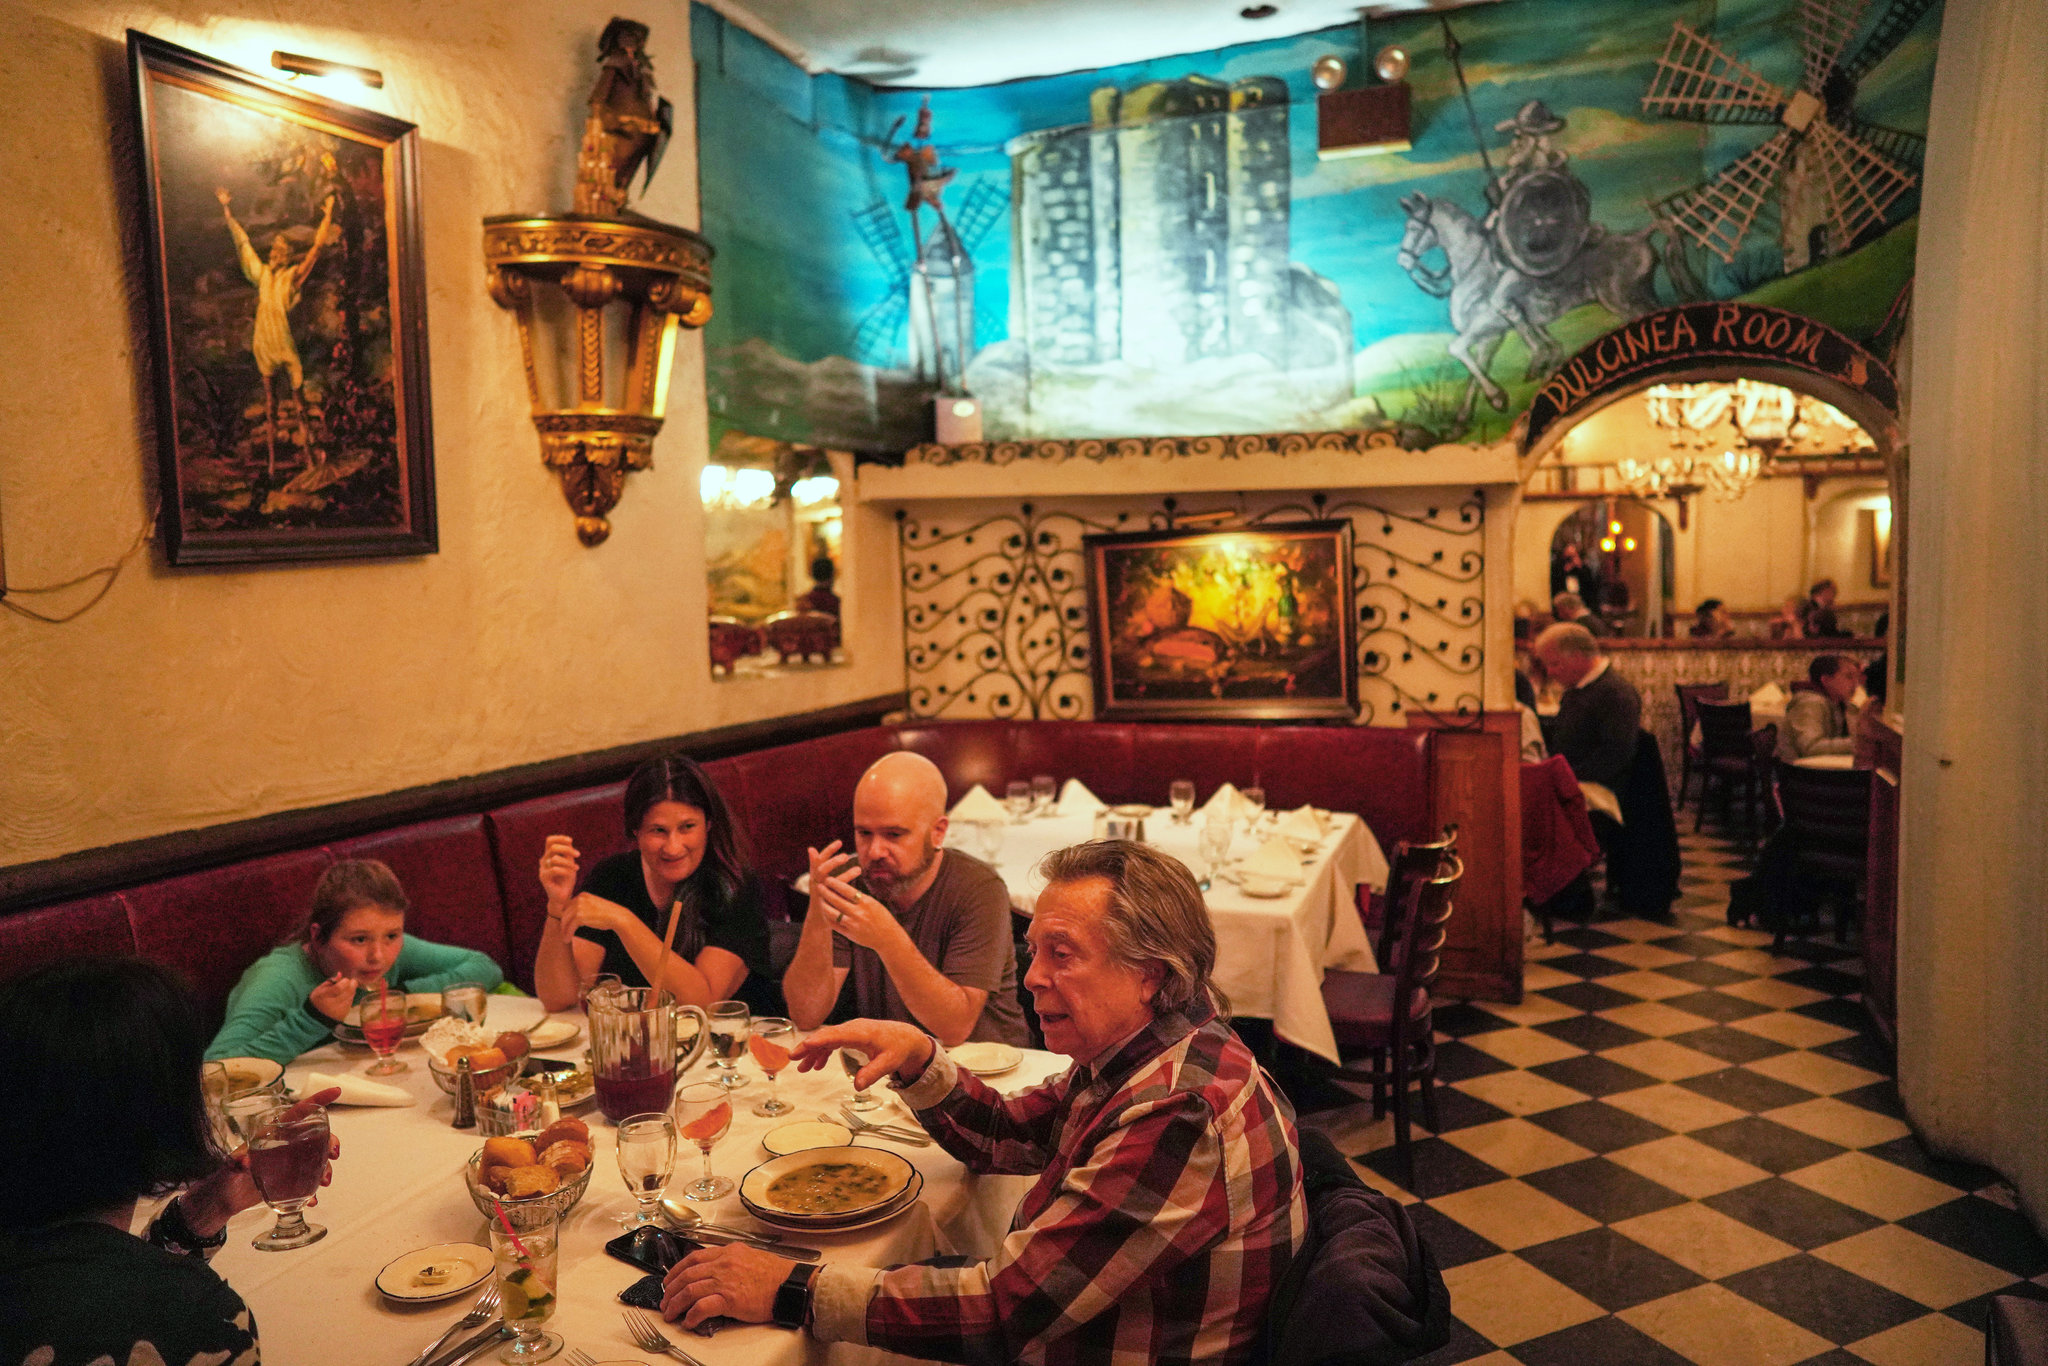 At El Quijote One Last Helping Of Charm Kitsch And Memories The New York Times